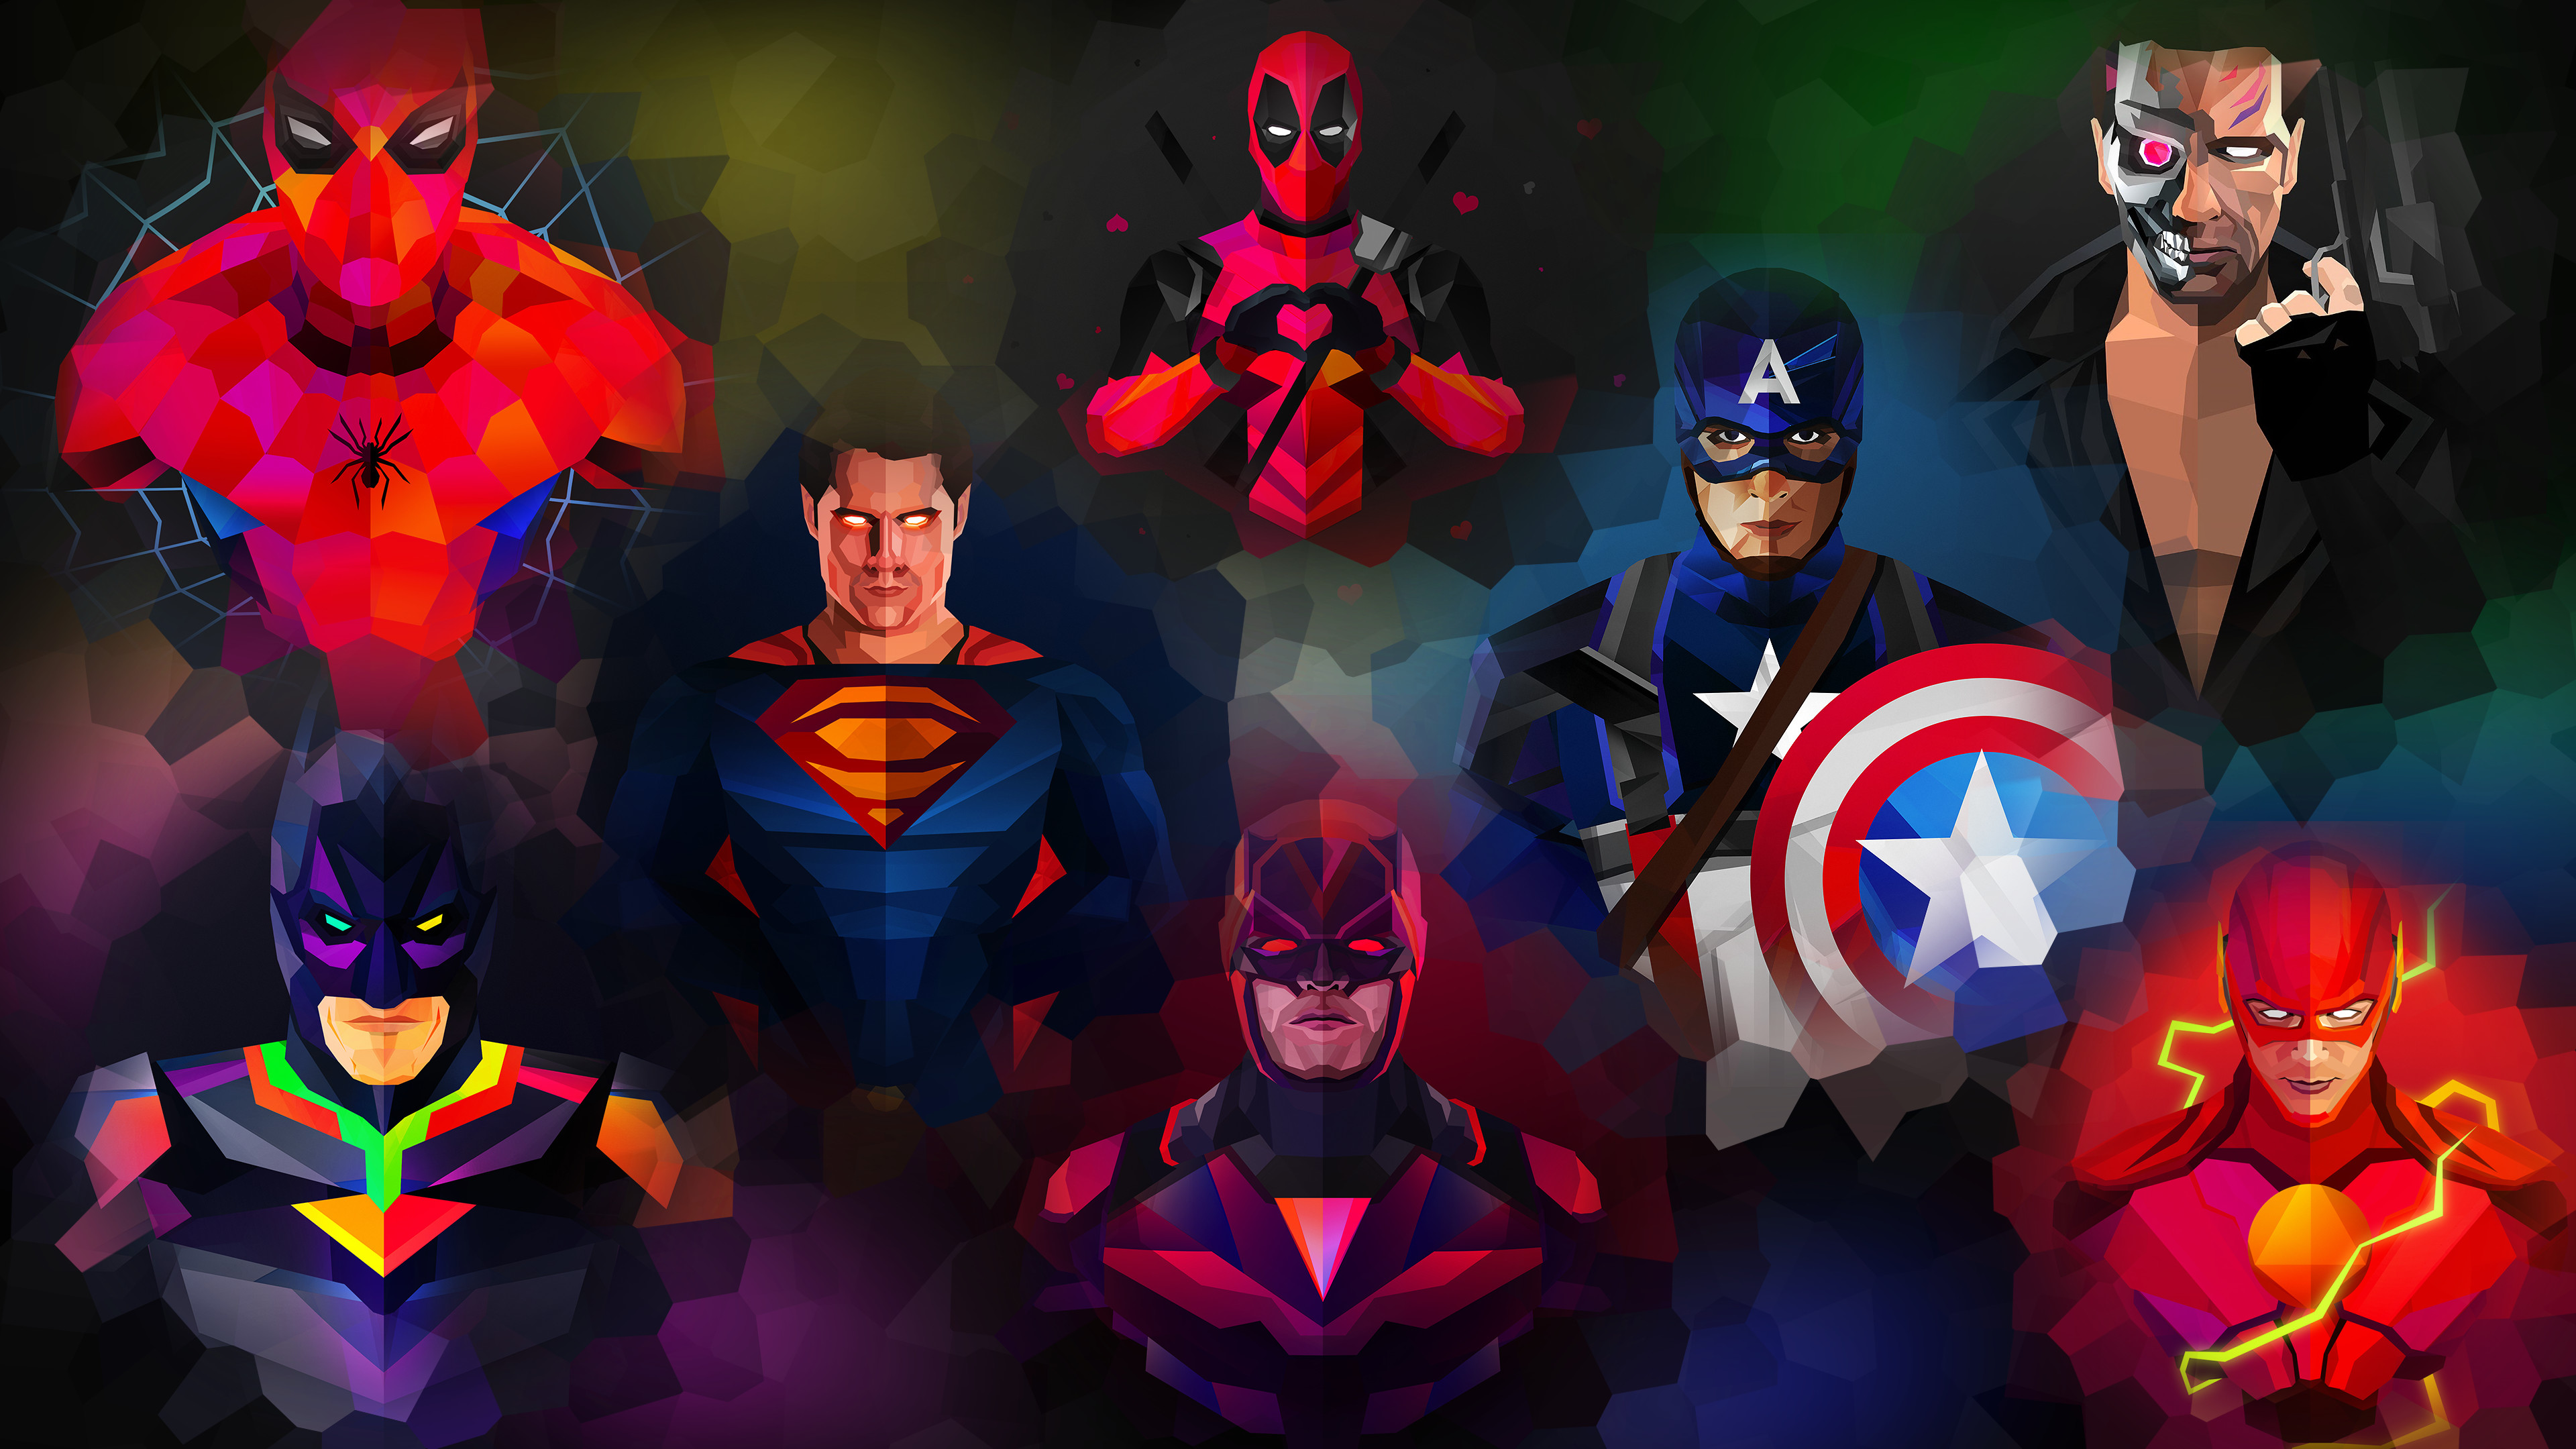 3840x2160 Superhero 4k Wallpaper